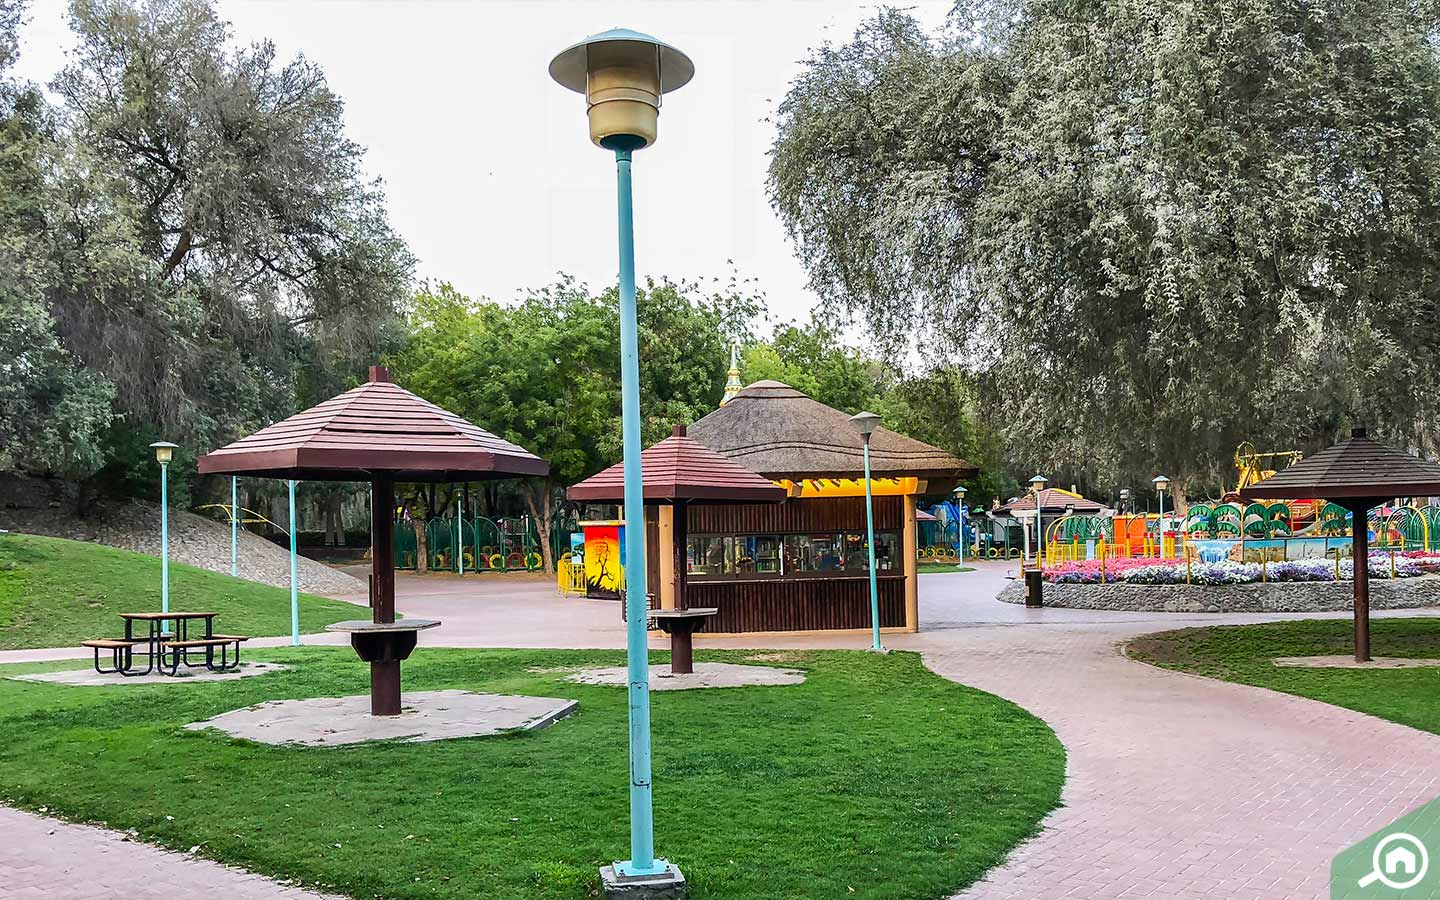 Mushrif Park in Mirdif